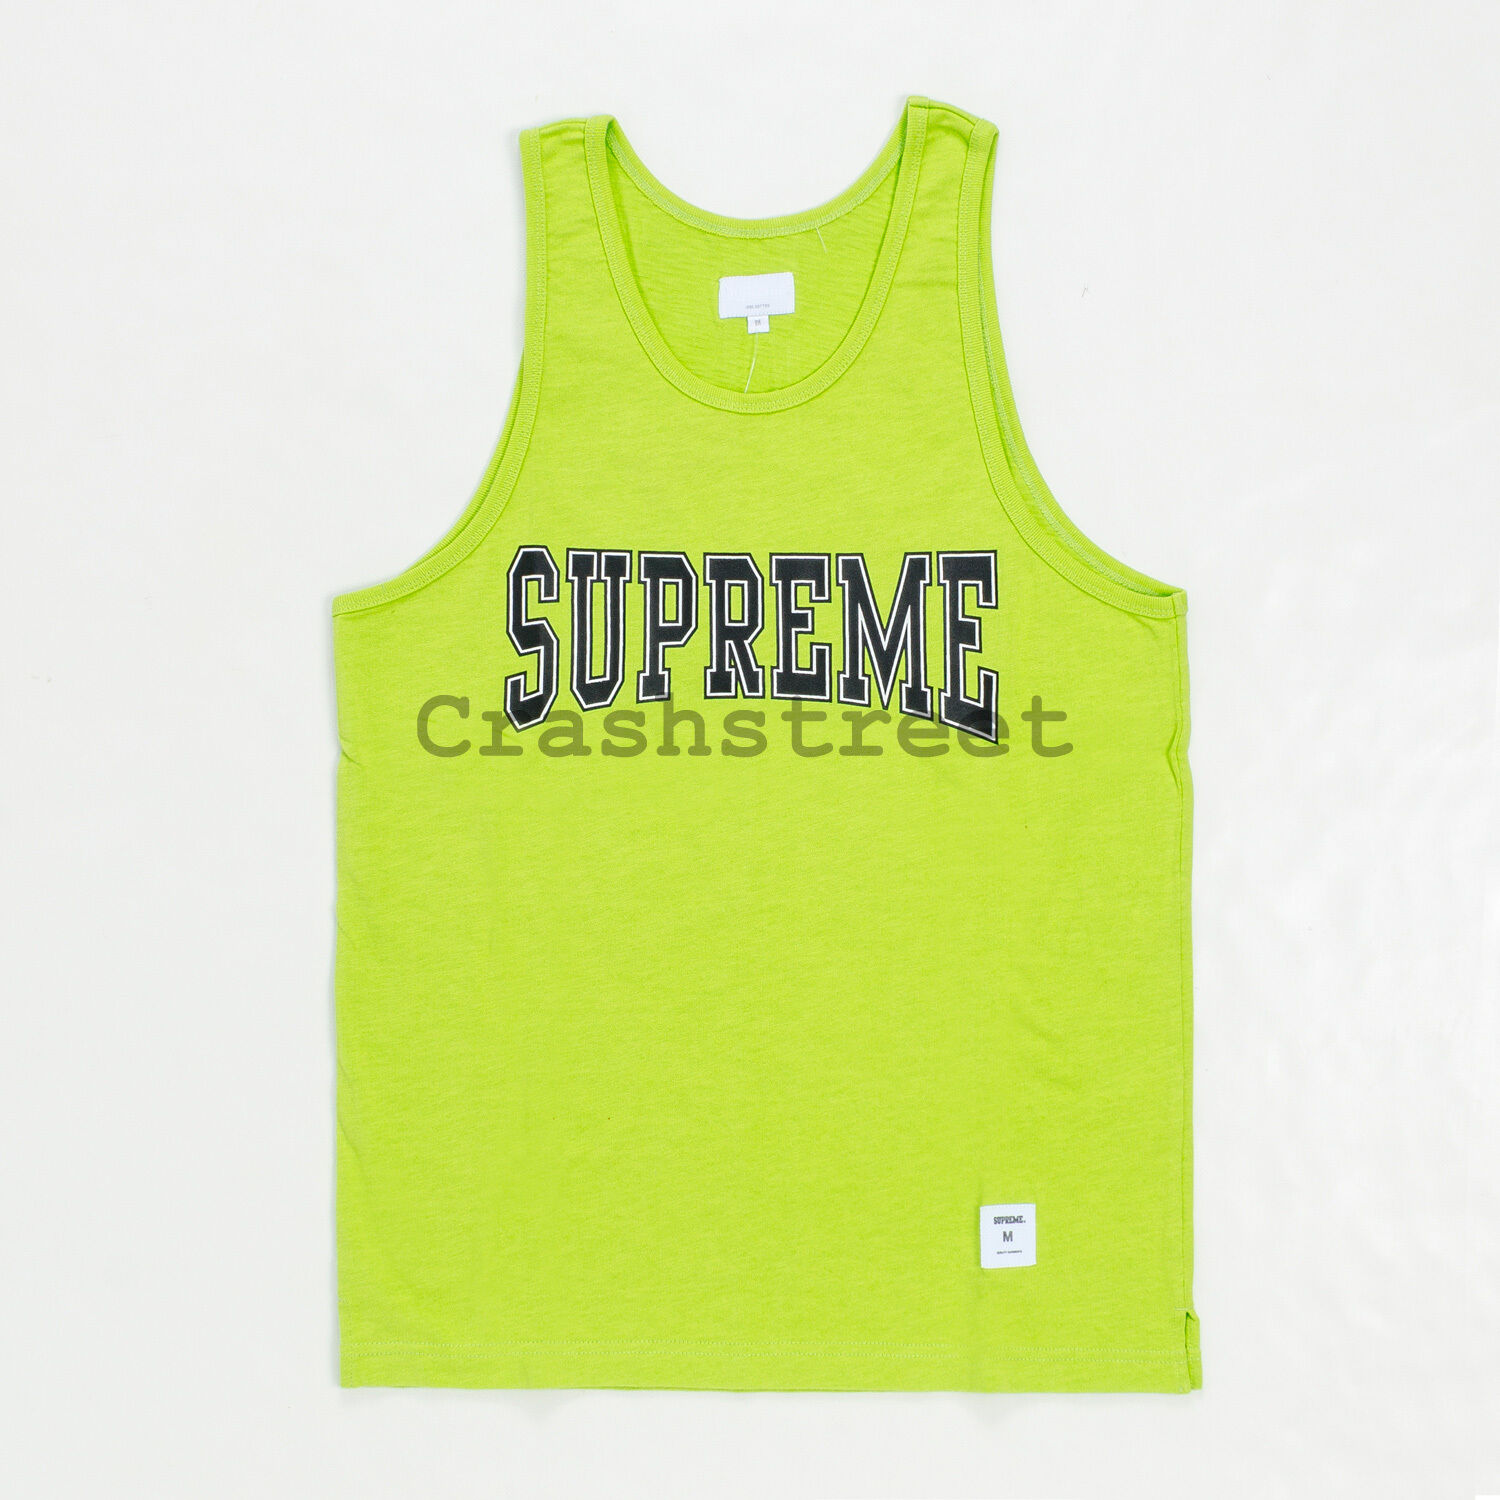 Supreme SS15 Collegiate Box Logo Tank Top Tee - Grün